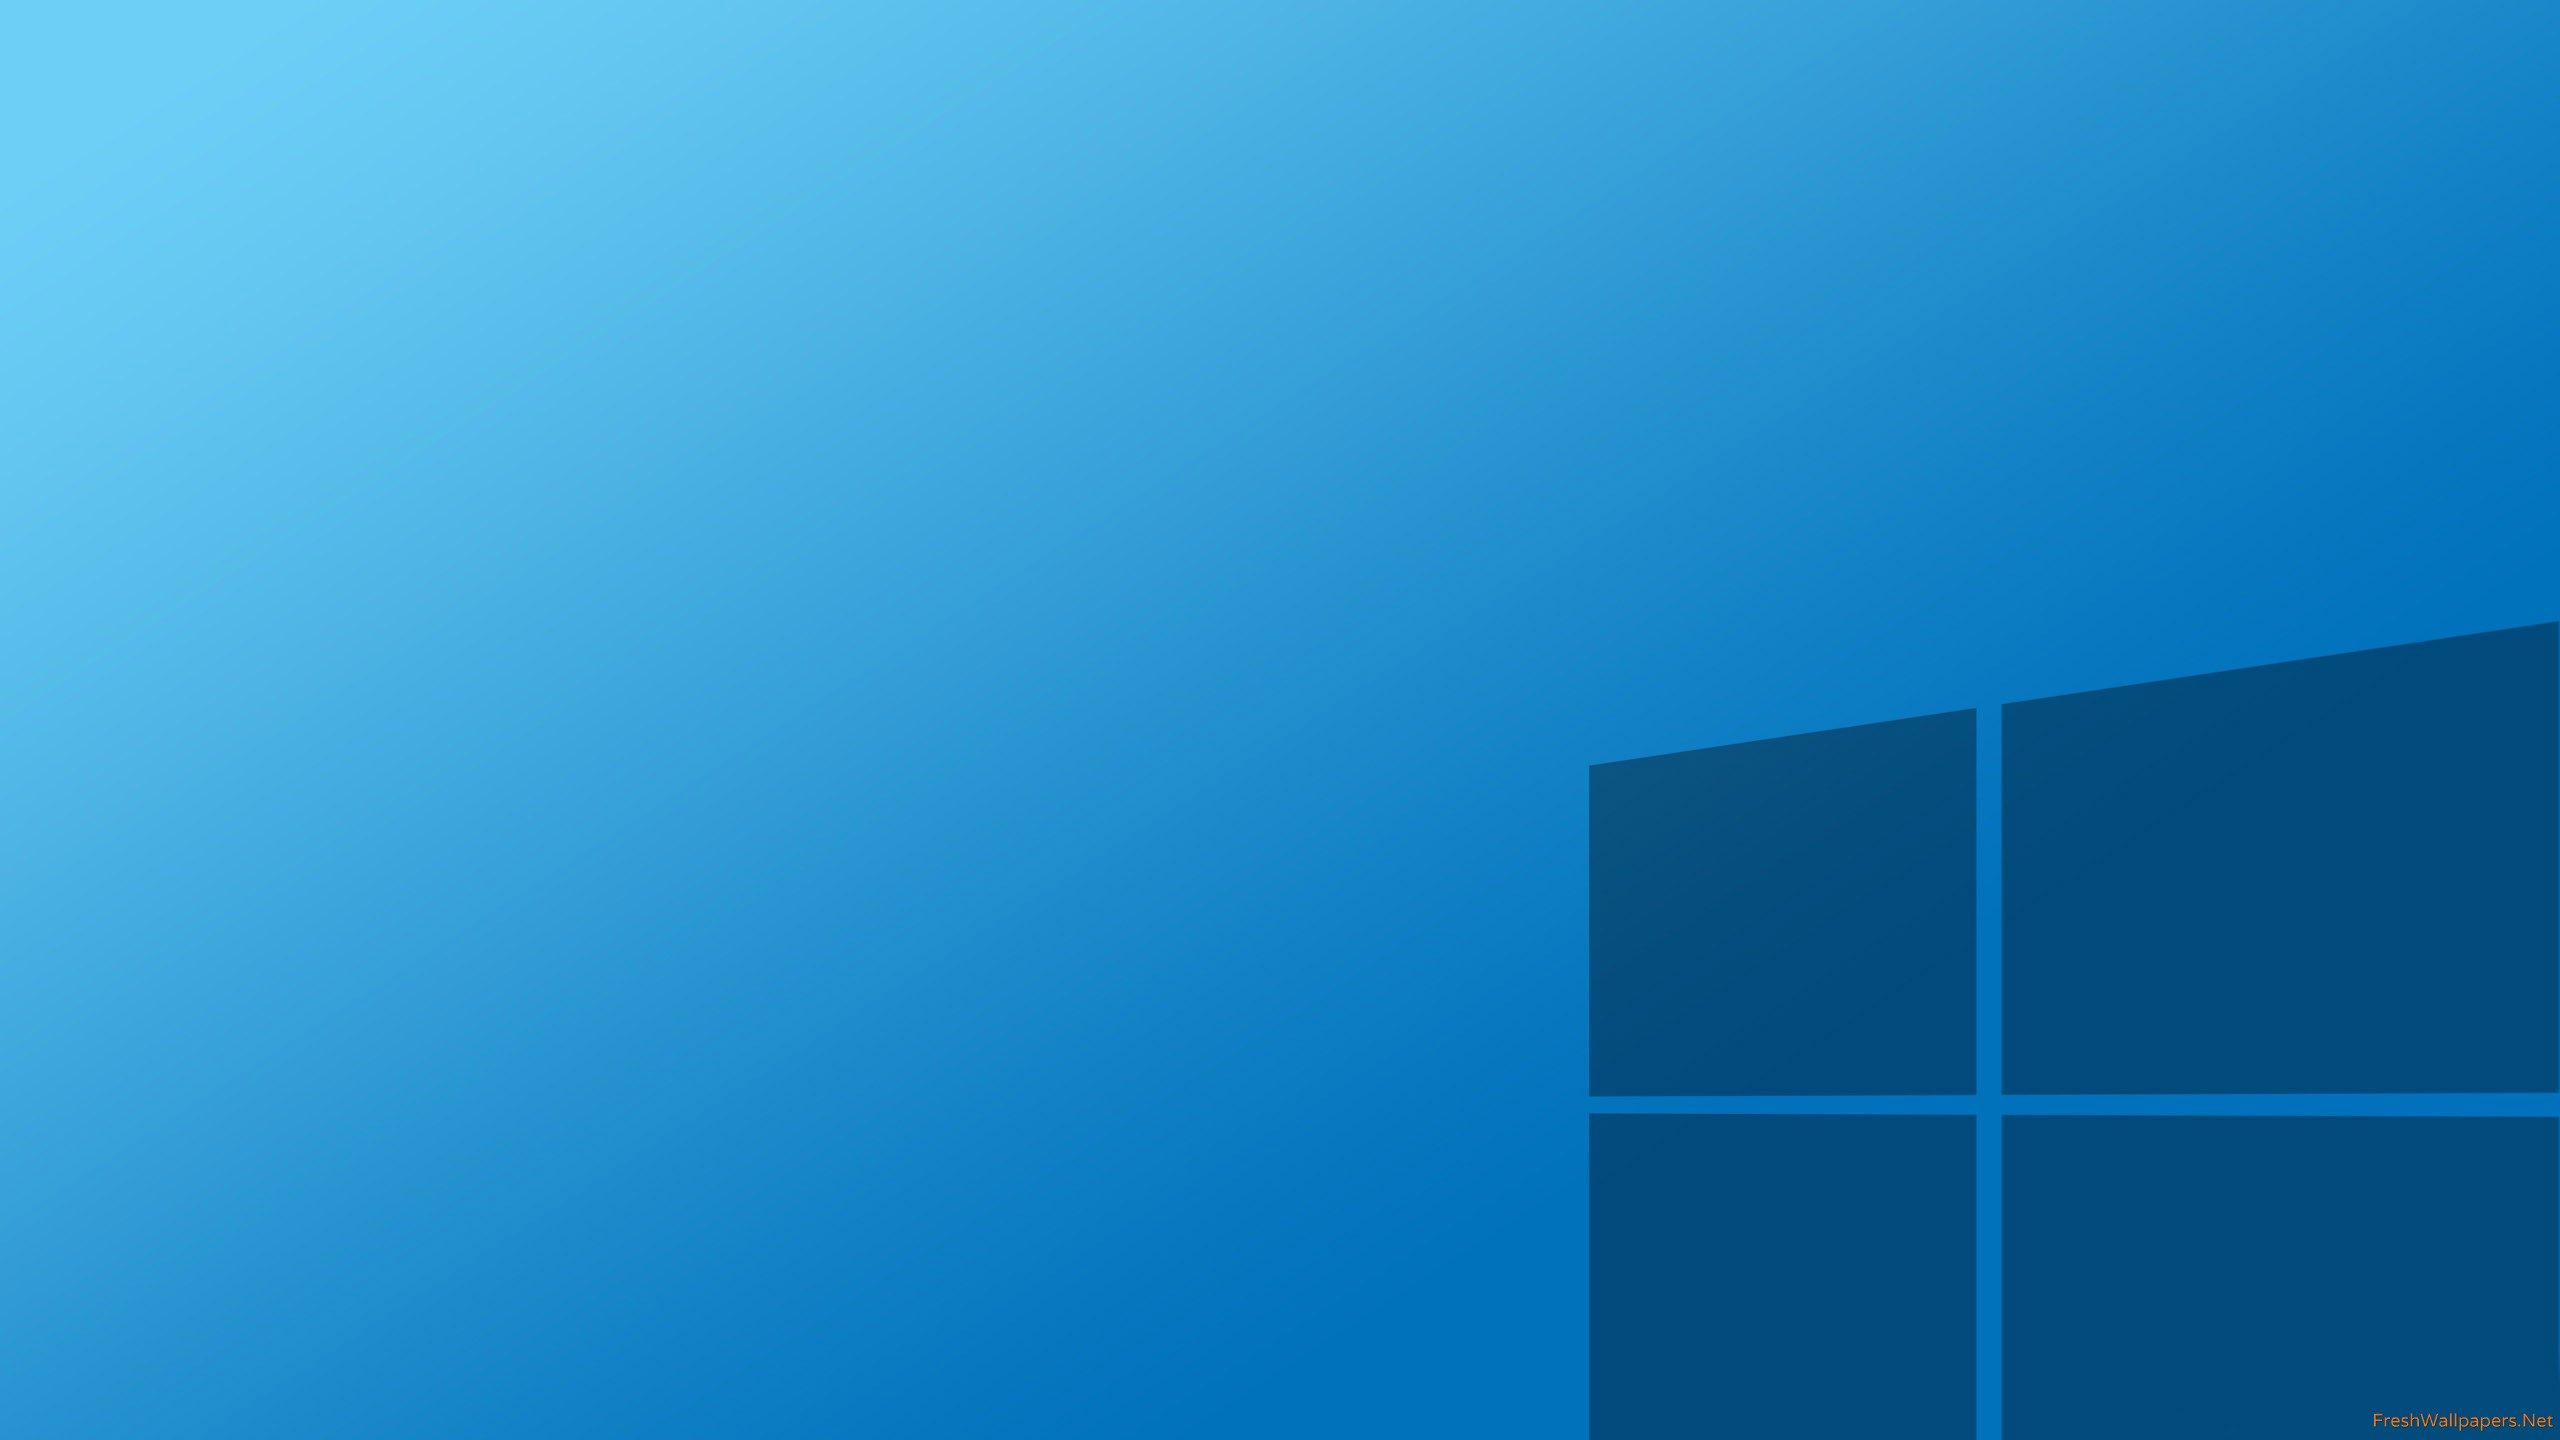 Windows 10 Blue Background wallpaper 4k